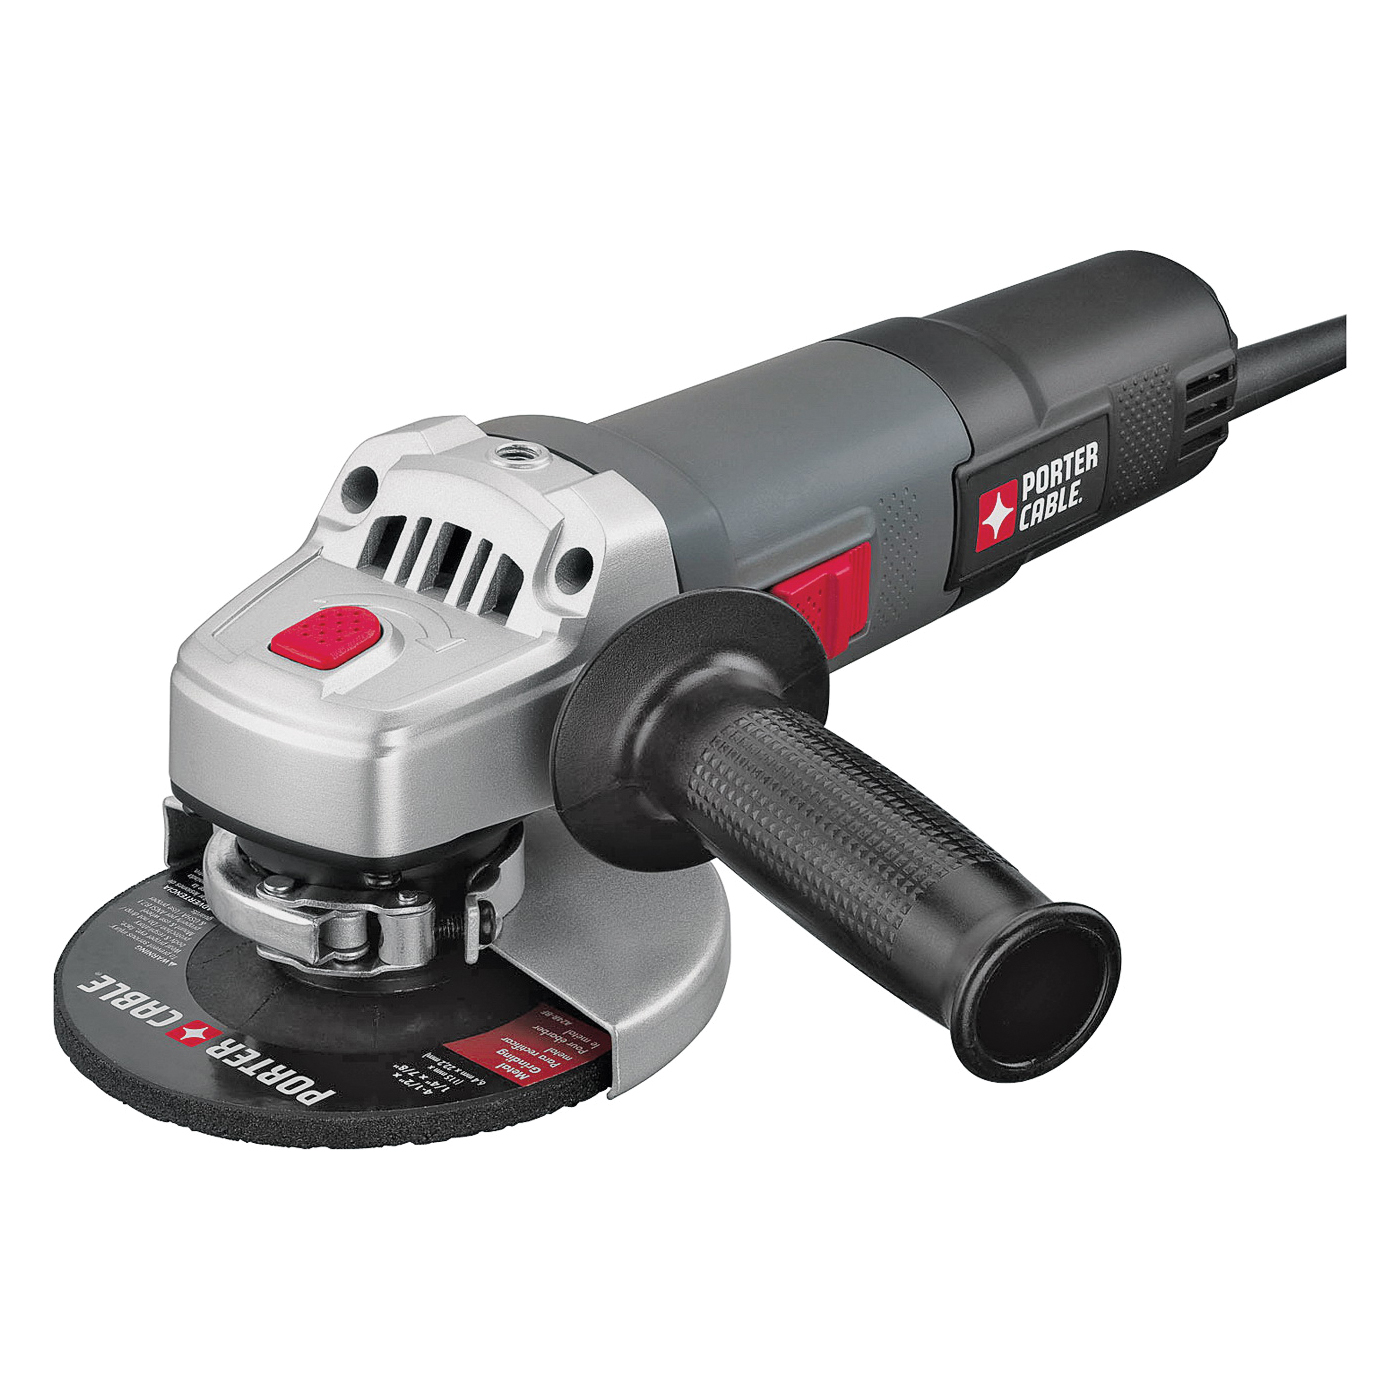 Picture of PORTER-CABLE PCE810 Angle Grinder, 120 V, 6 A, 1500 W, 5/8-11 Spindle, 4-1/2 in Dia Wheel, 11,000 rpm Speed